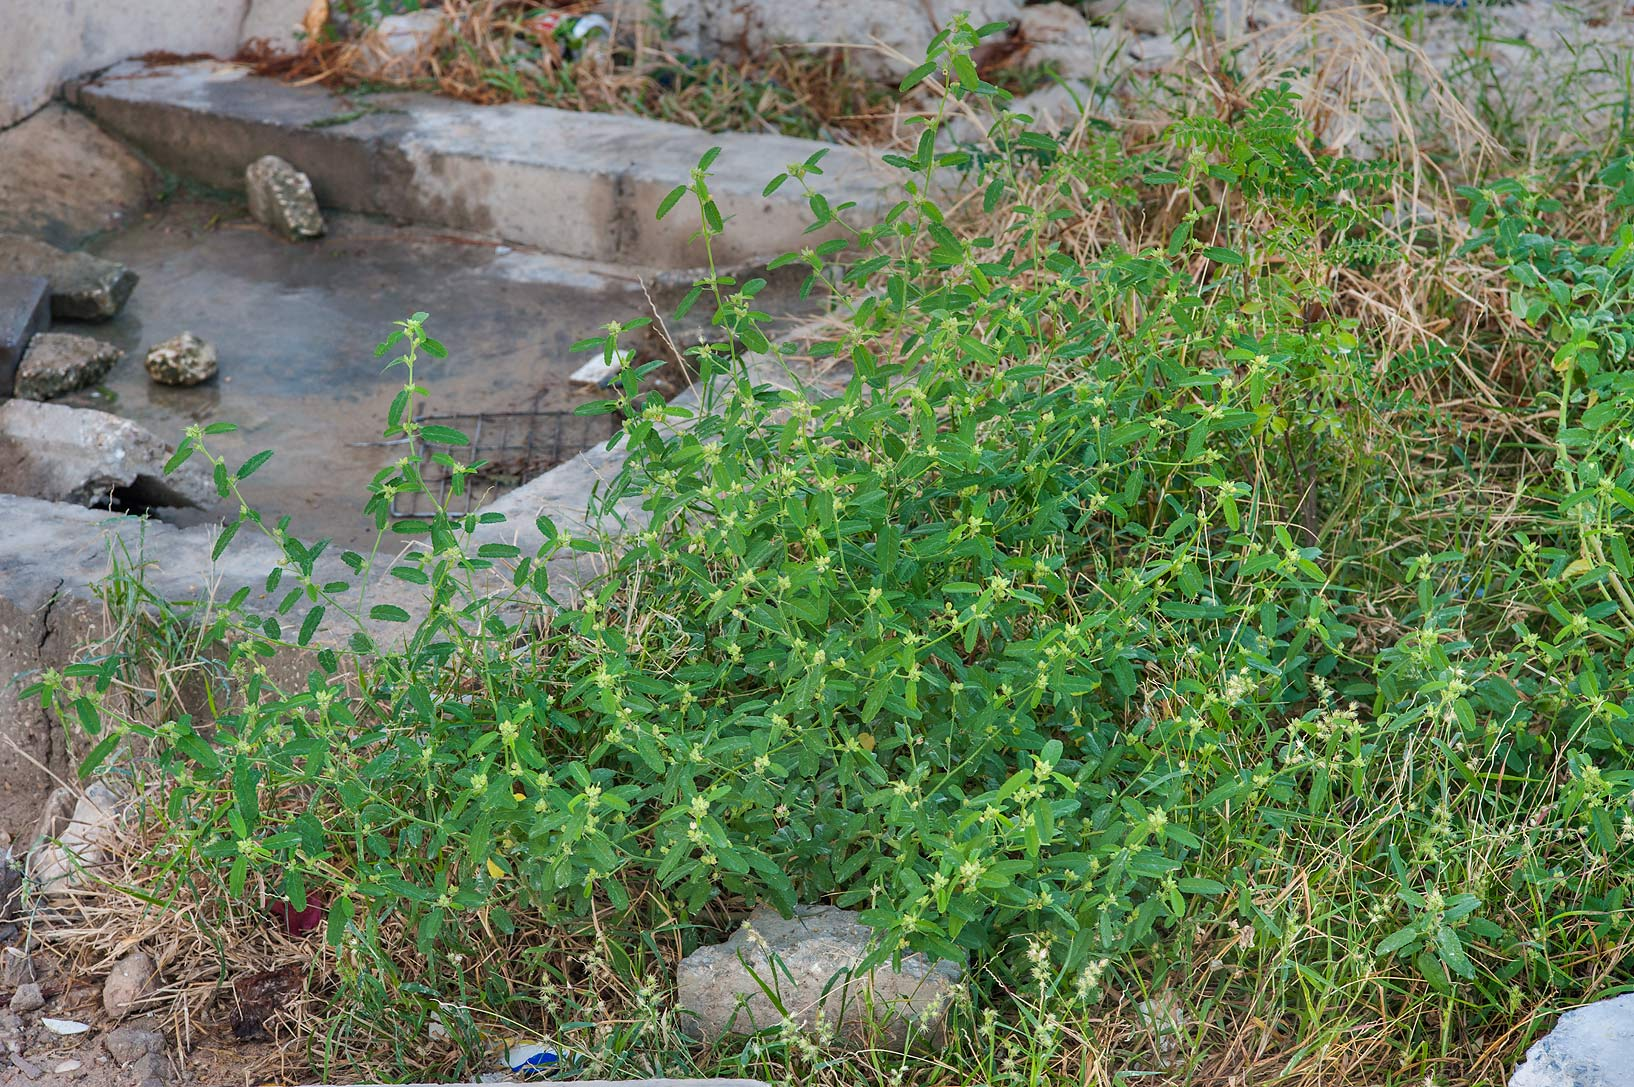 Plant of Sida spinosa (Sida alba) near a water...streets in Onaiza area. Doha, Qatar